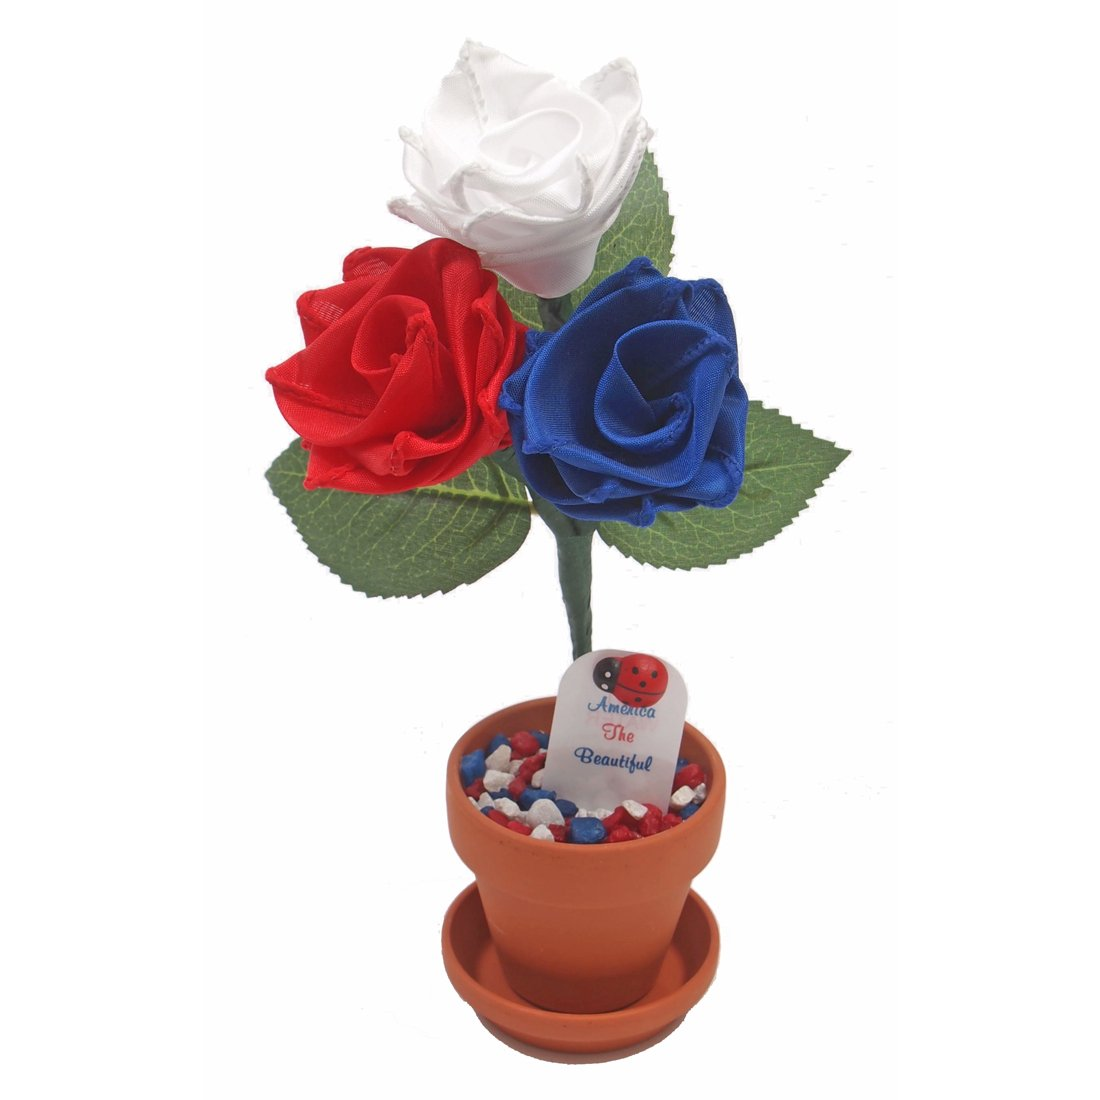 Patriotic July 4th gift rose, red white and blue - America The Beautiful